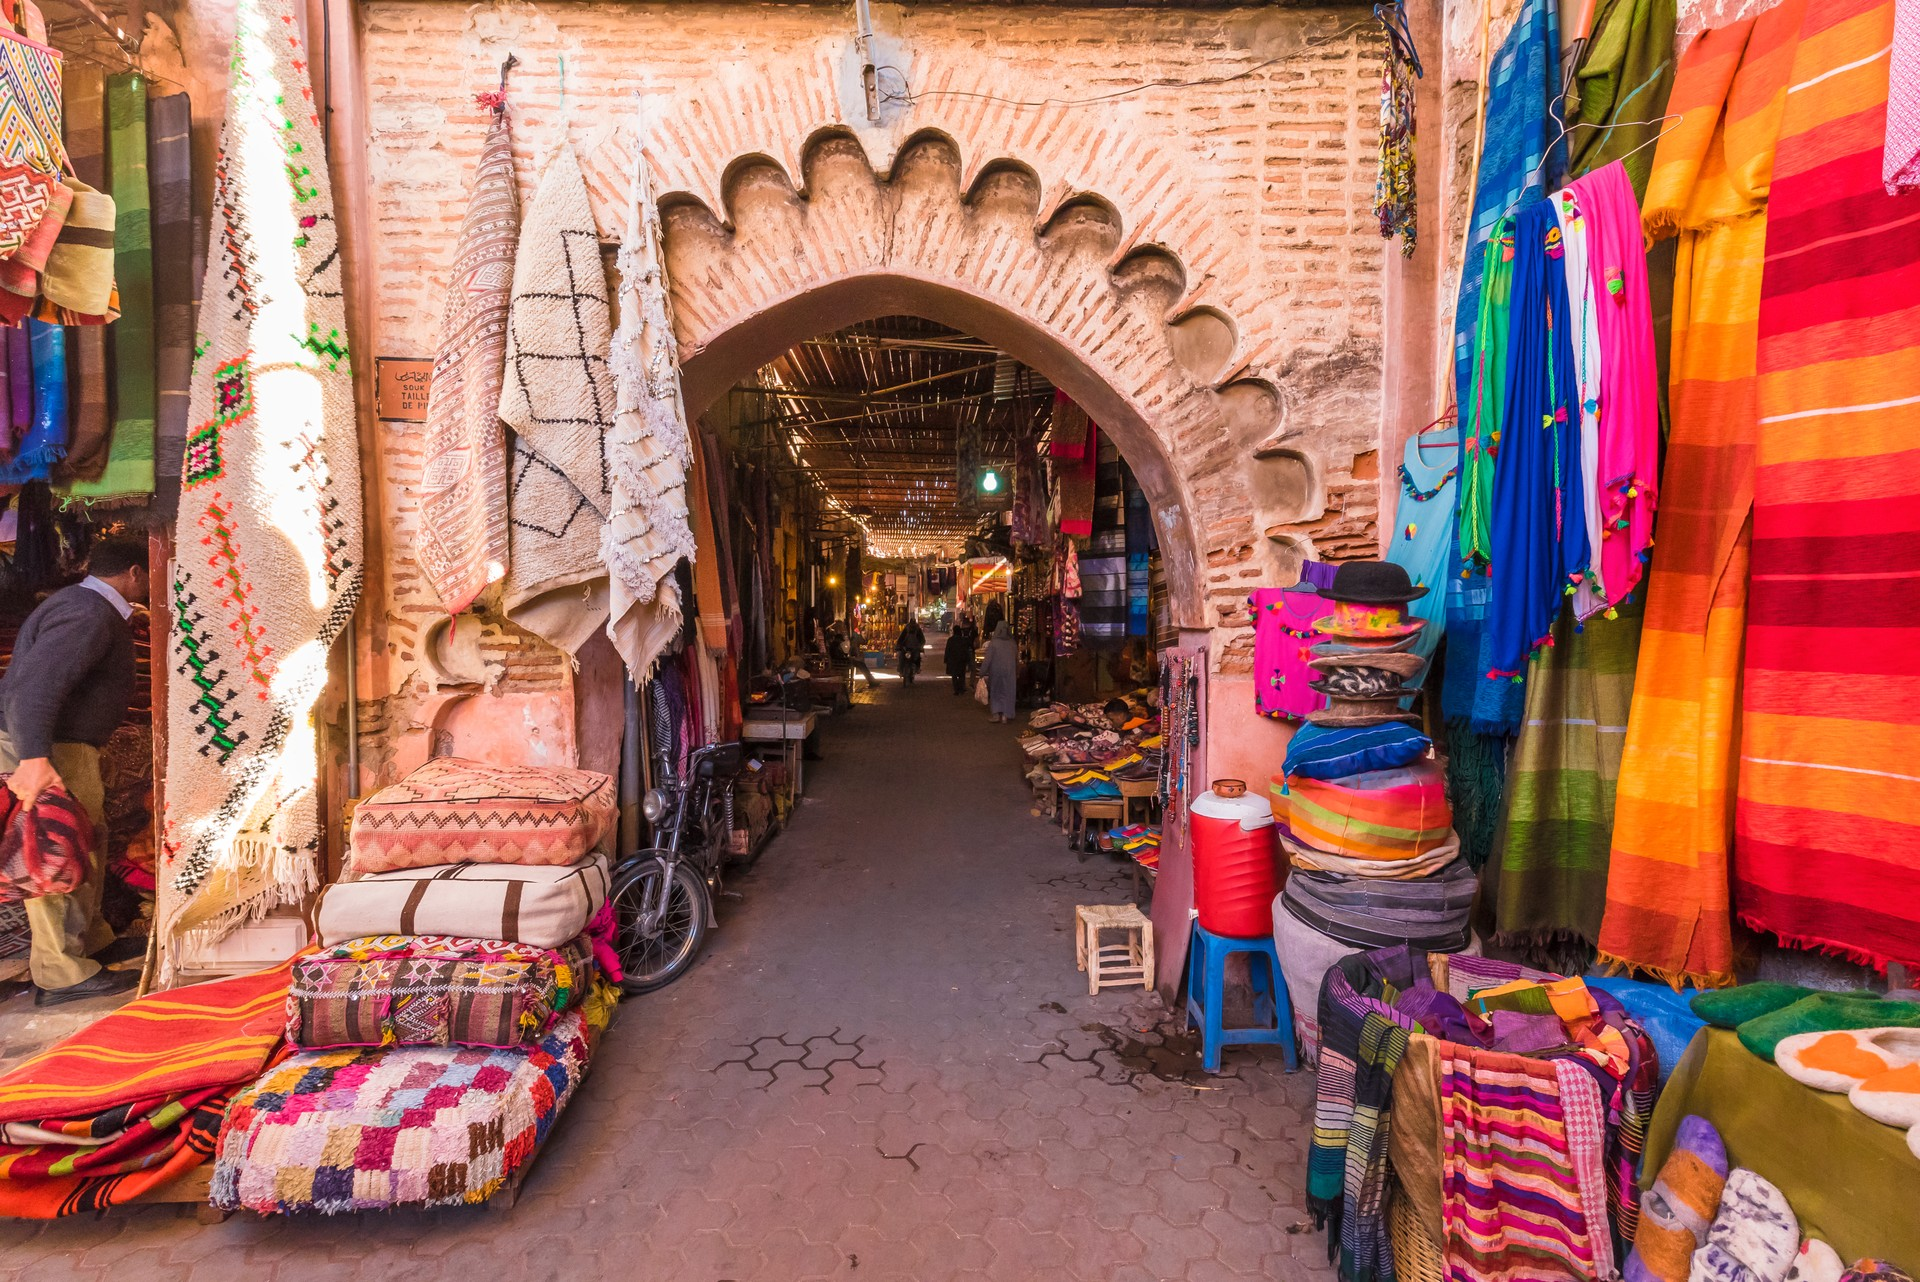 The entrance to an old Arabic souk in Marrakech